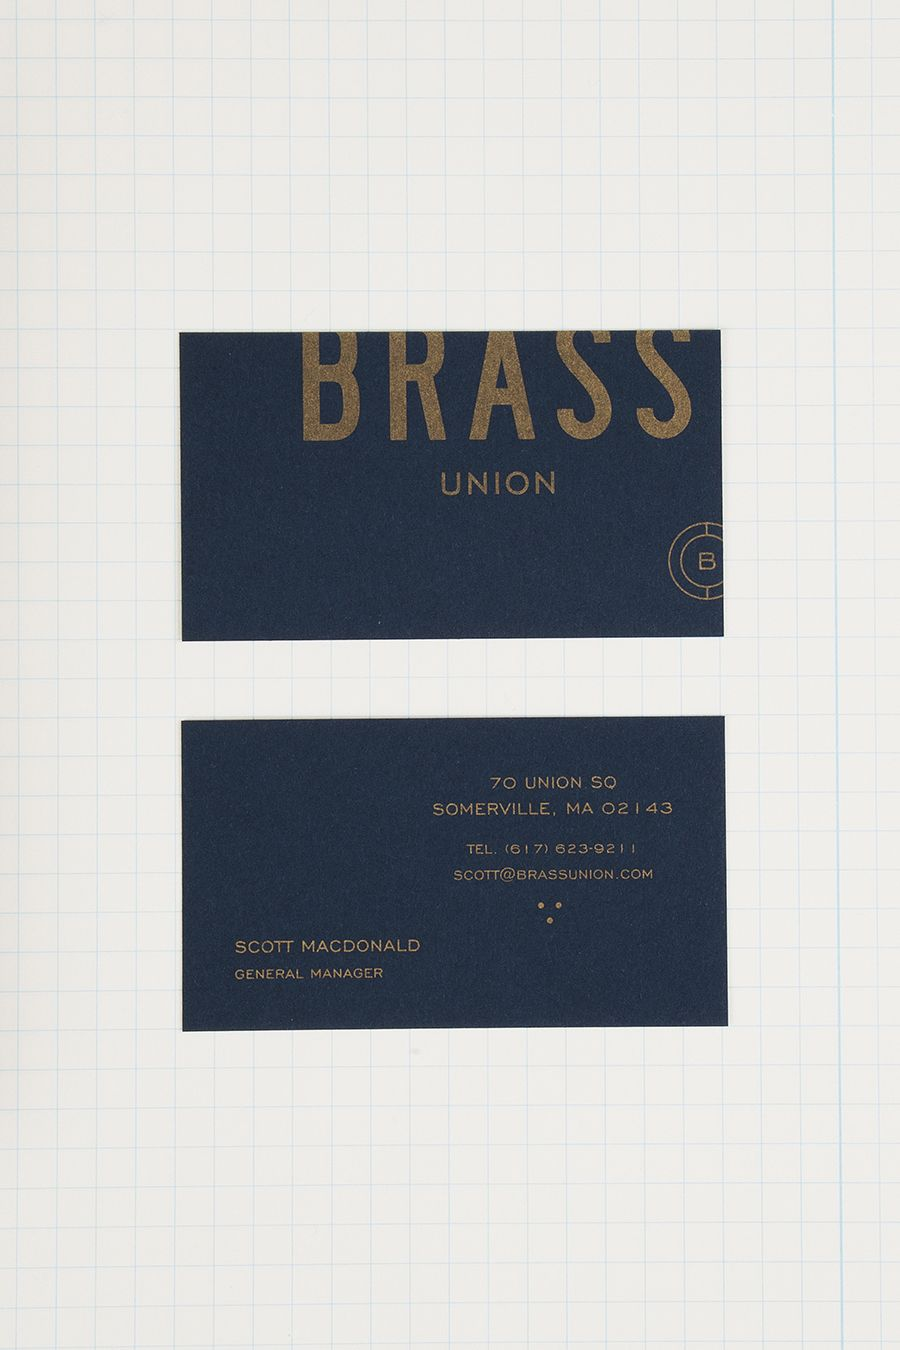 New Brand Identity For Brass Union By Oat Bp O Dm Design